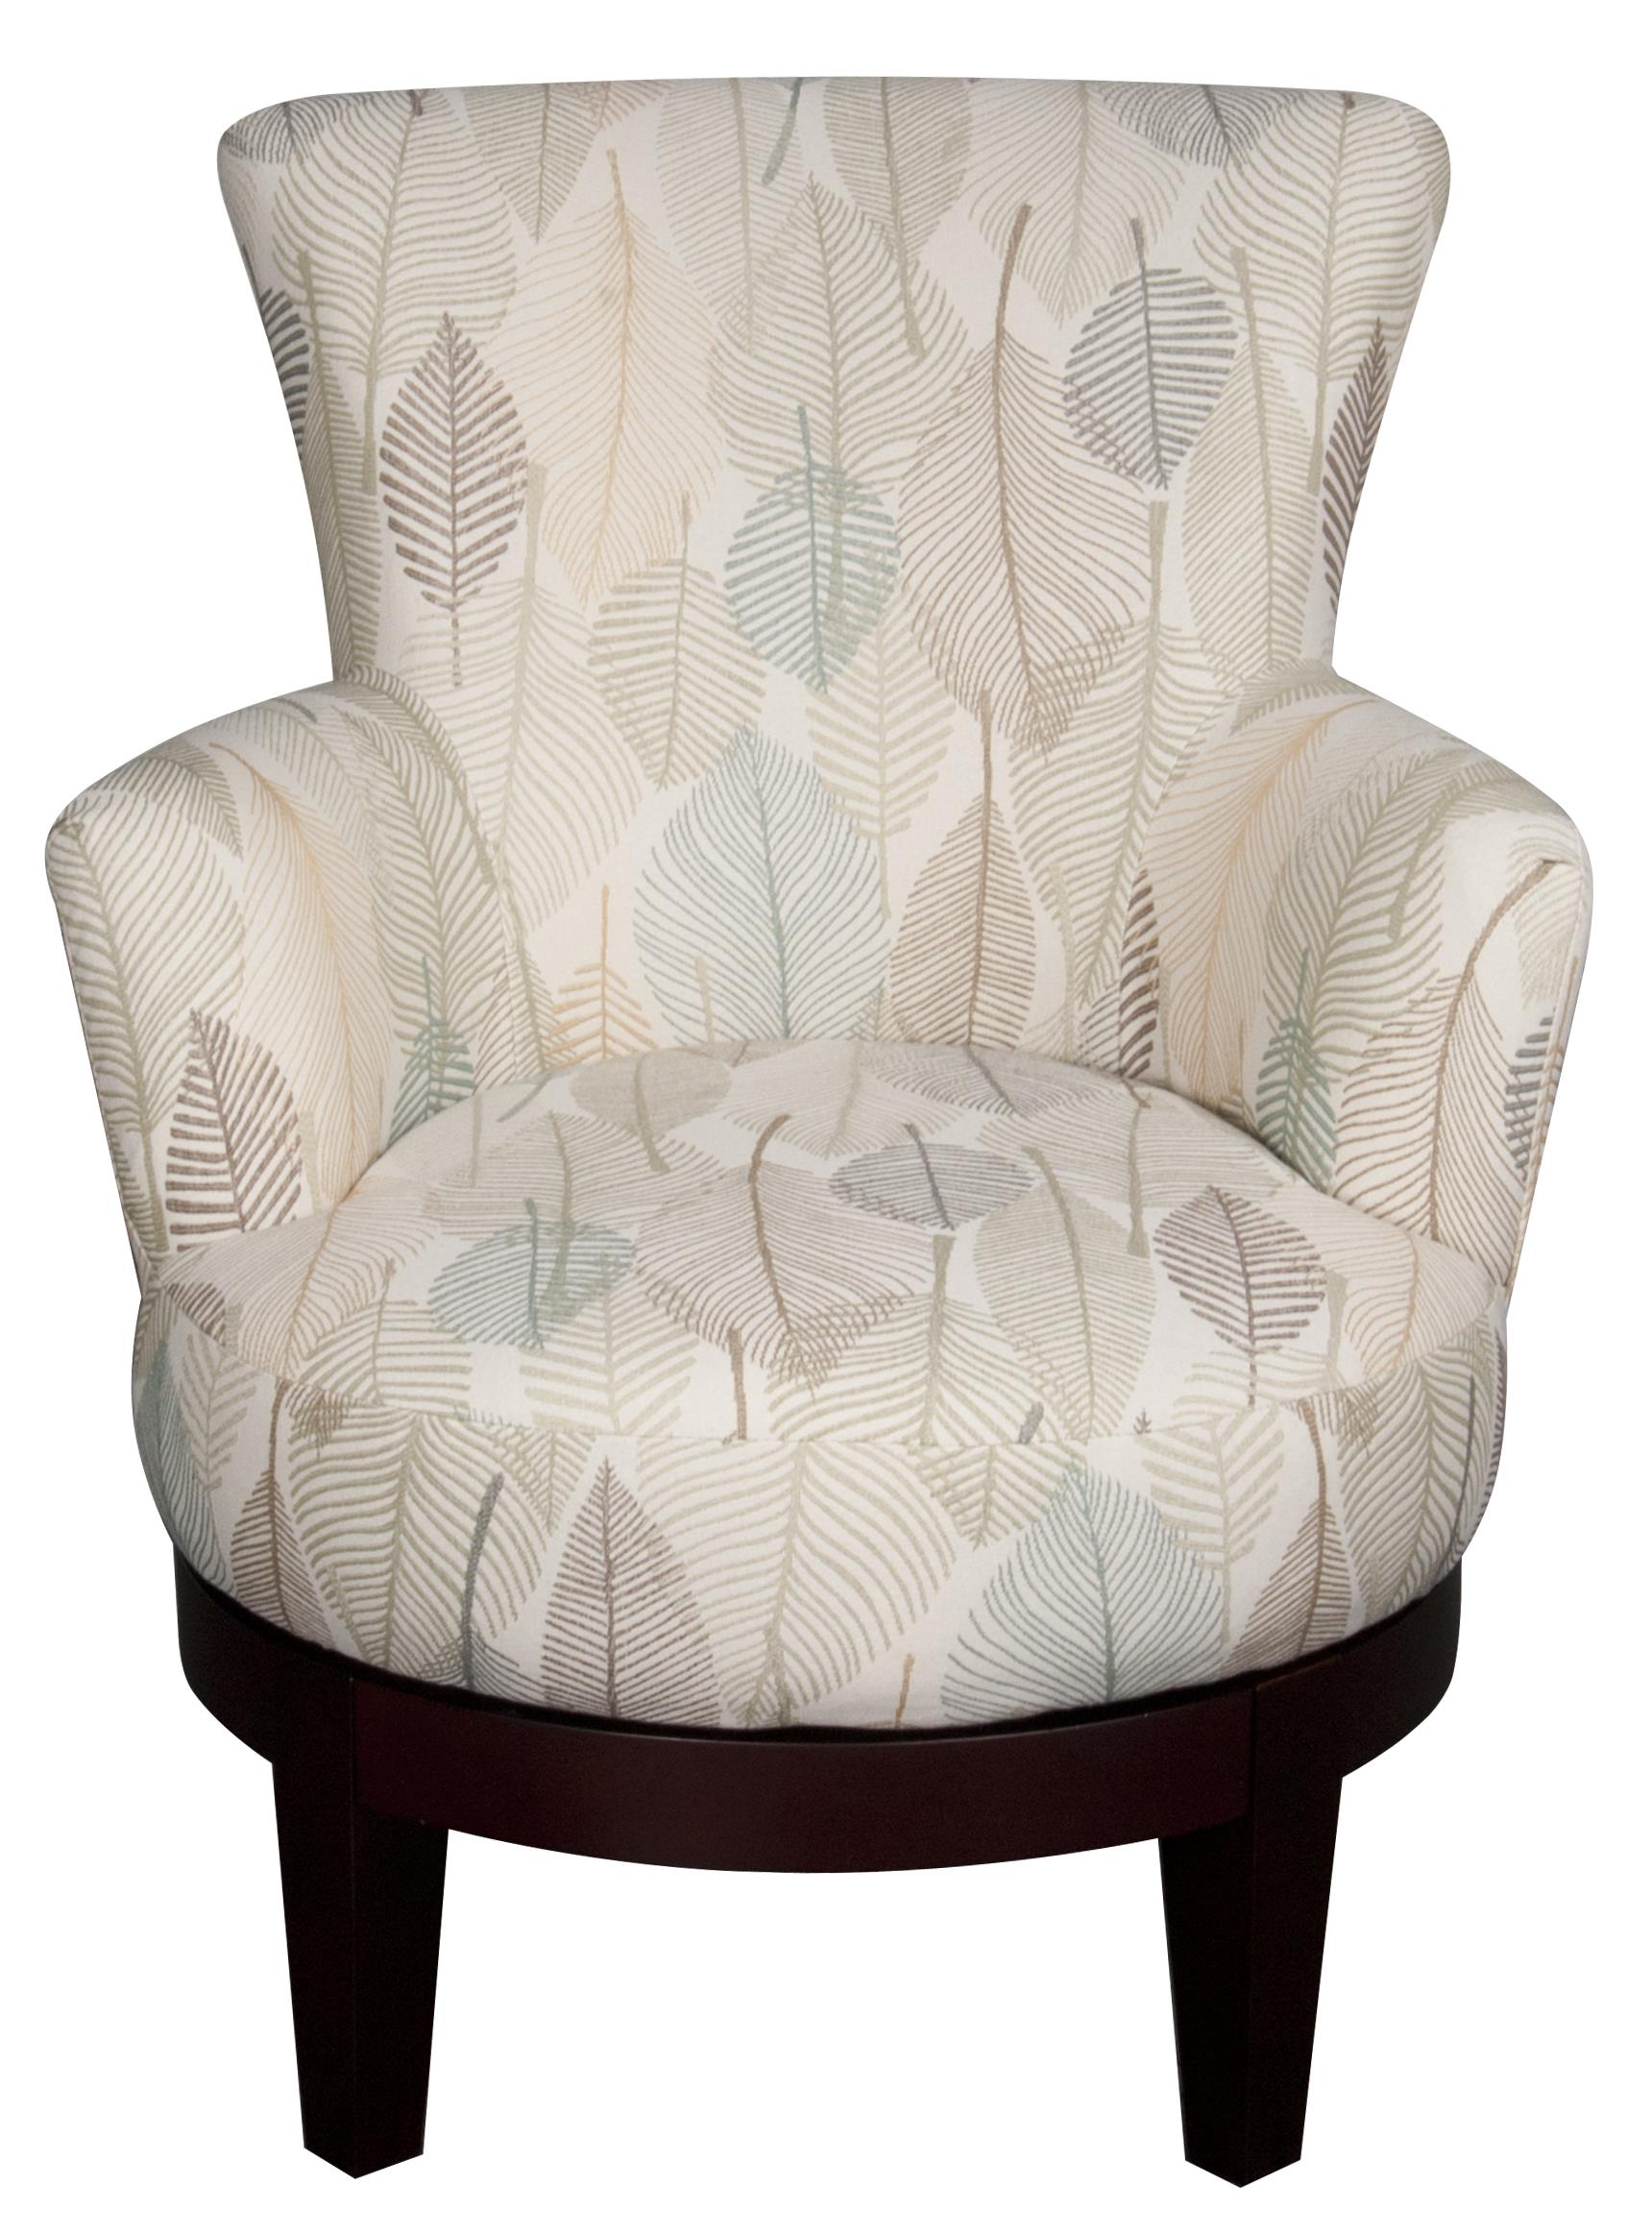 Jayda Jayda Swivel Chair by Best Home Furnishings at Morris Home